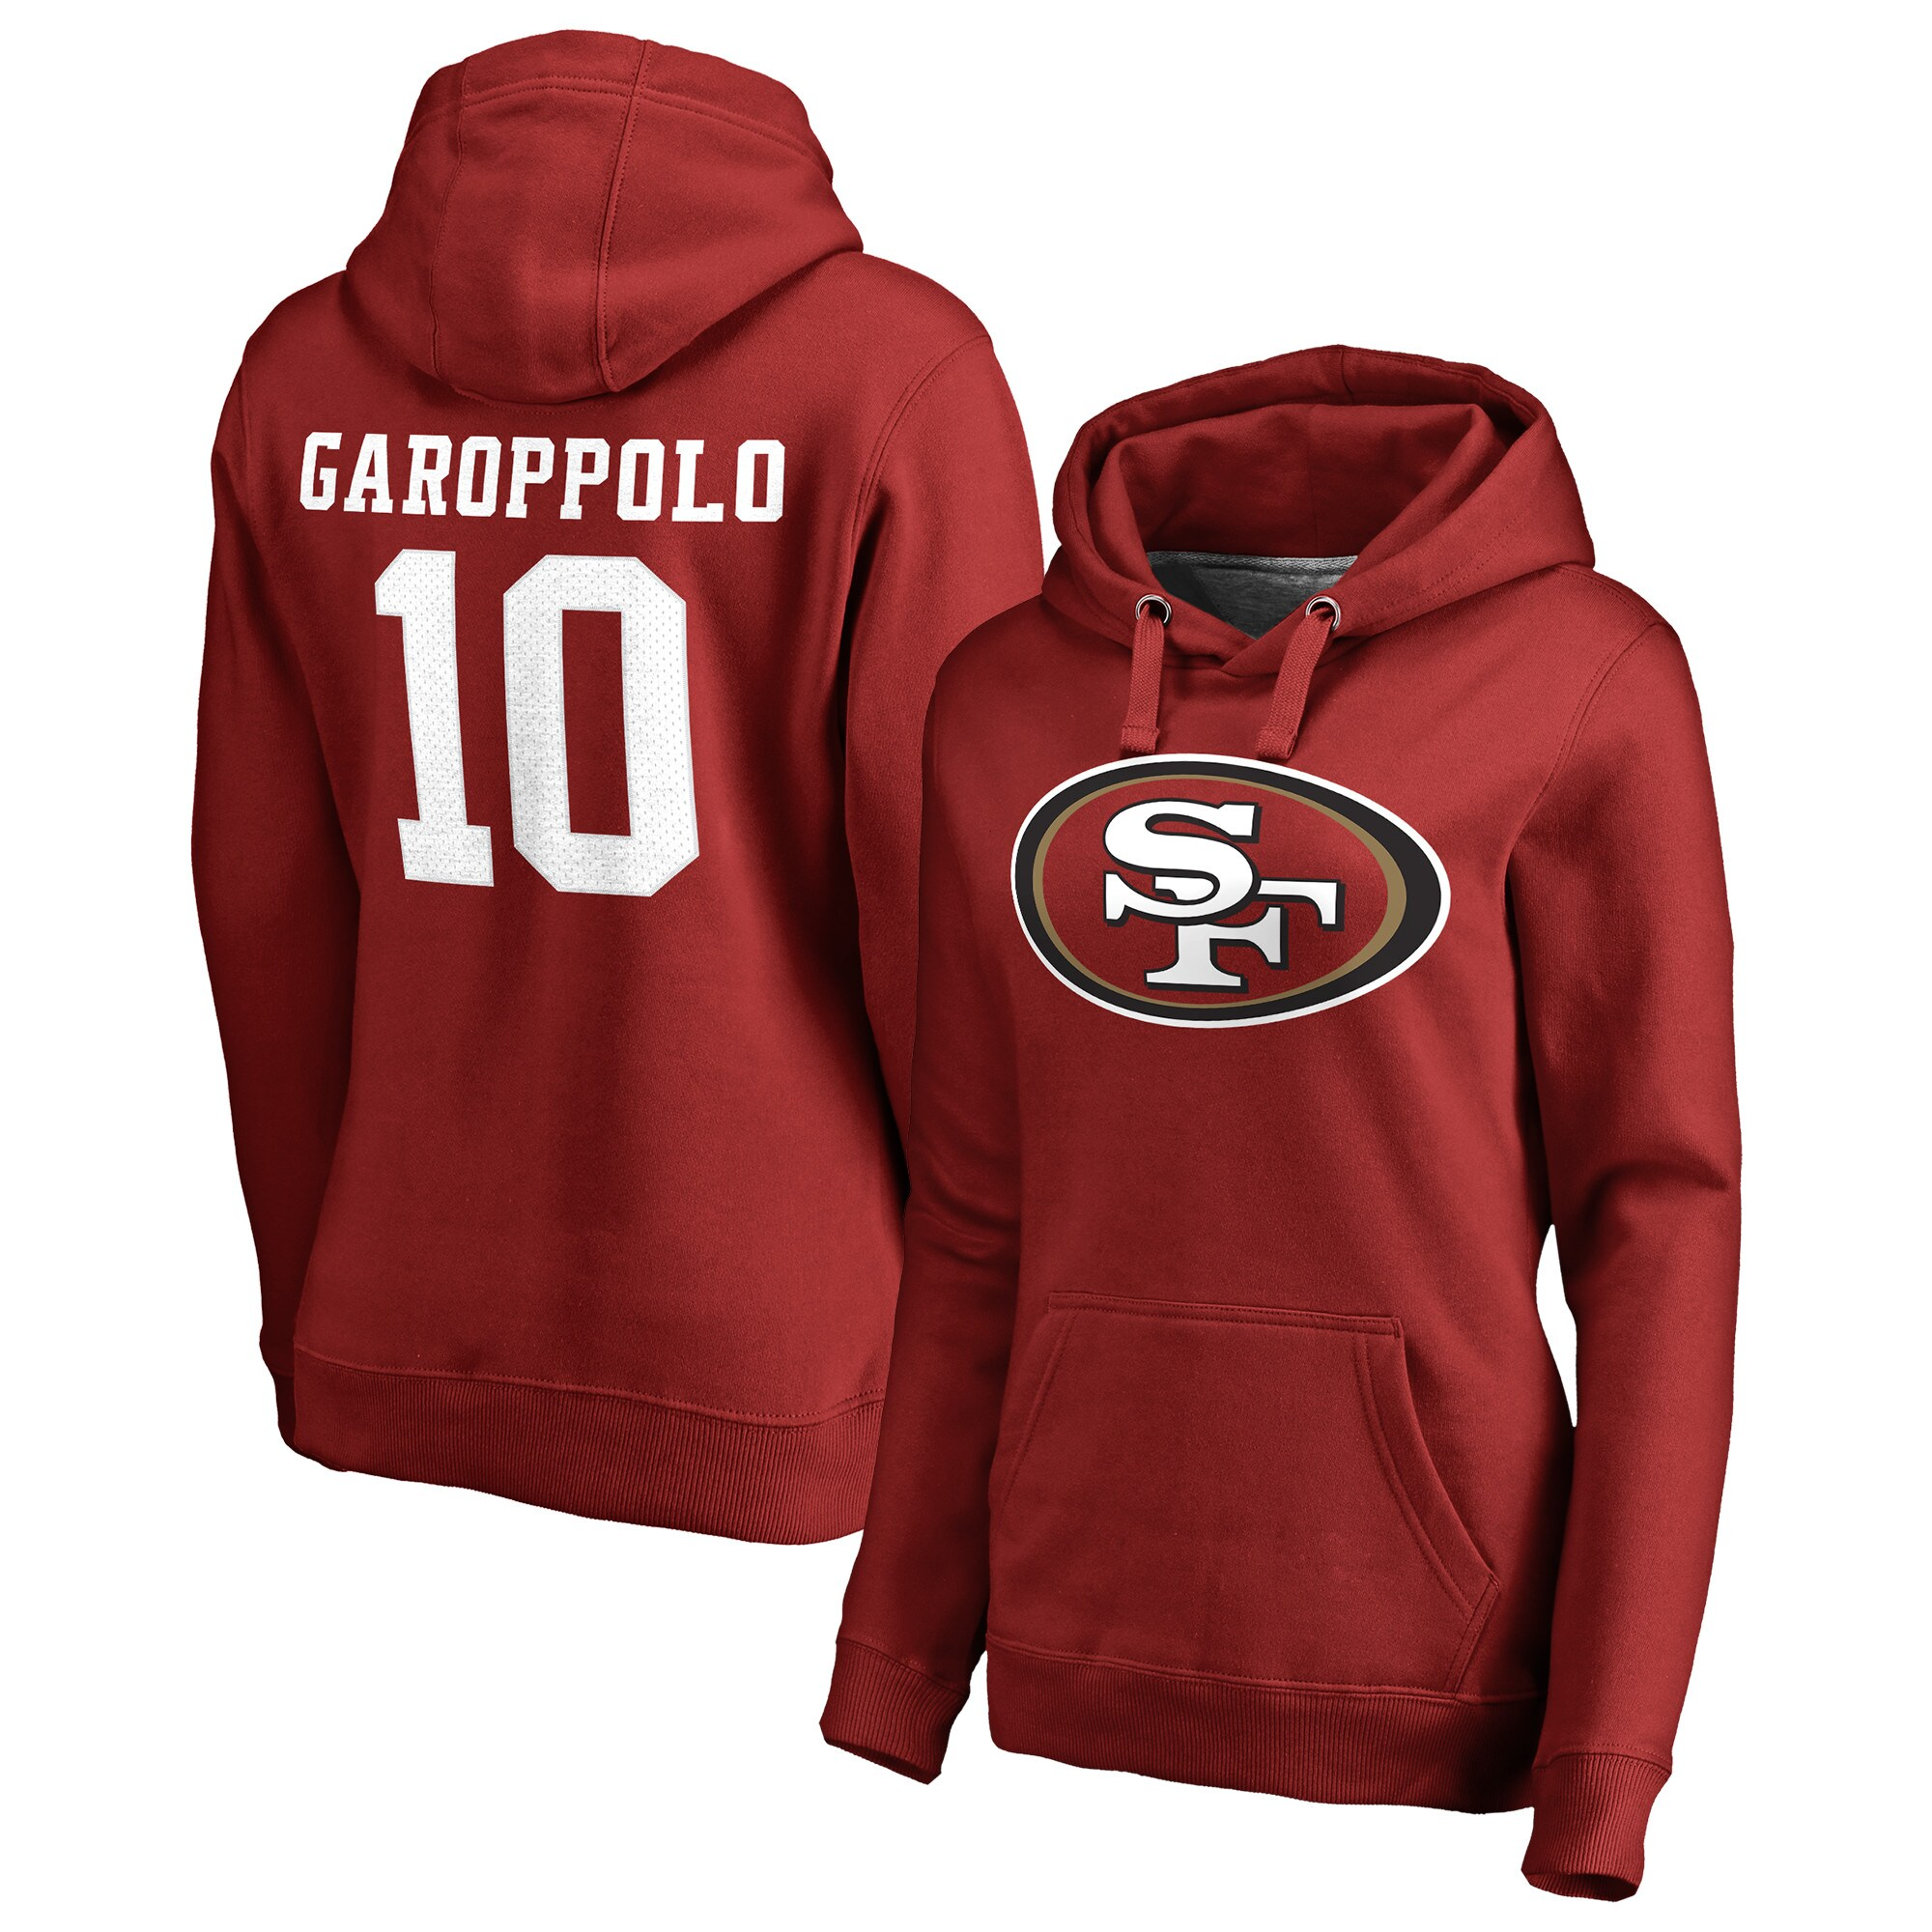 Jimmy Garoppolo San Francisco 49ers NFL Pro Line by Fanatics Branded Women's Player Icon Name & Number Pullover Hoodie - Scarlet